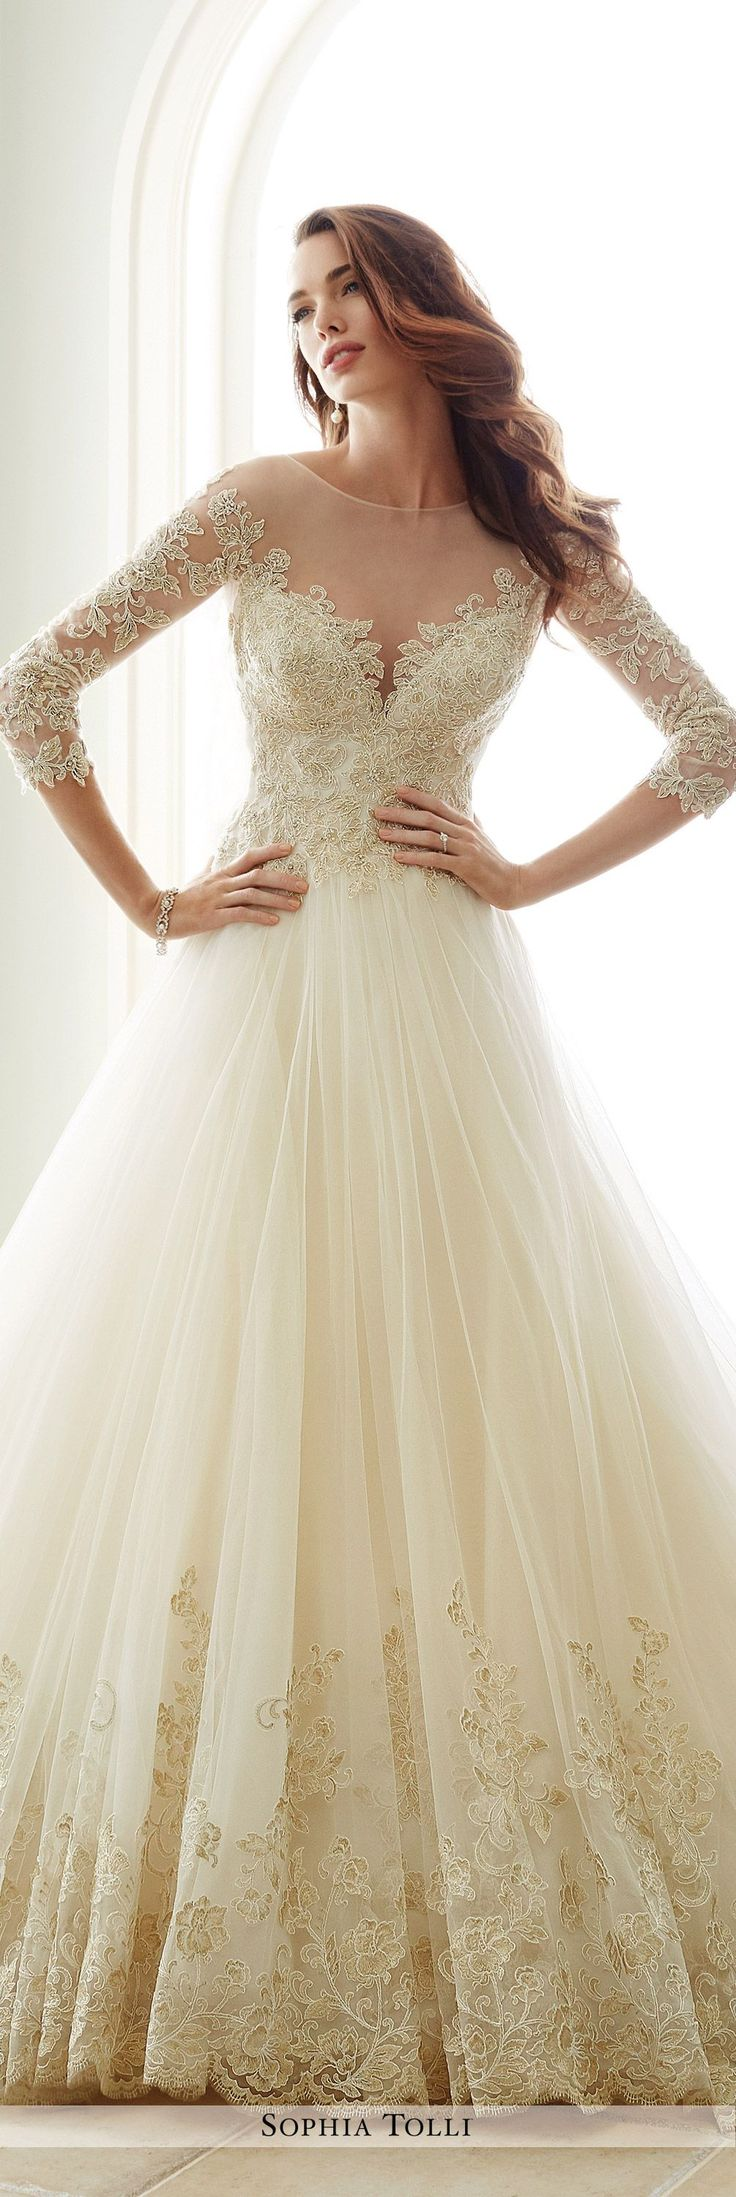 Best 25 scalloped wedding dresses ideas on pinterest for Best wedding dresses with sleeves